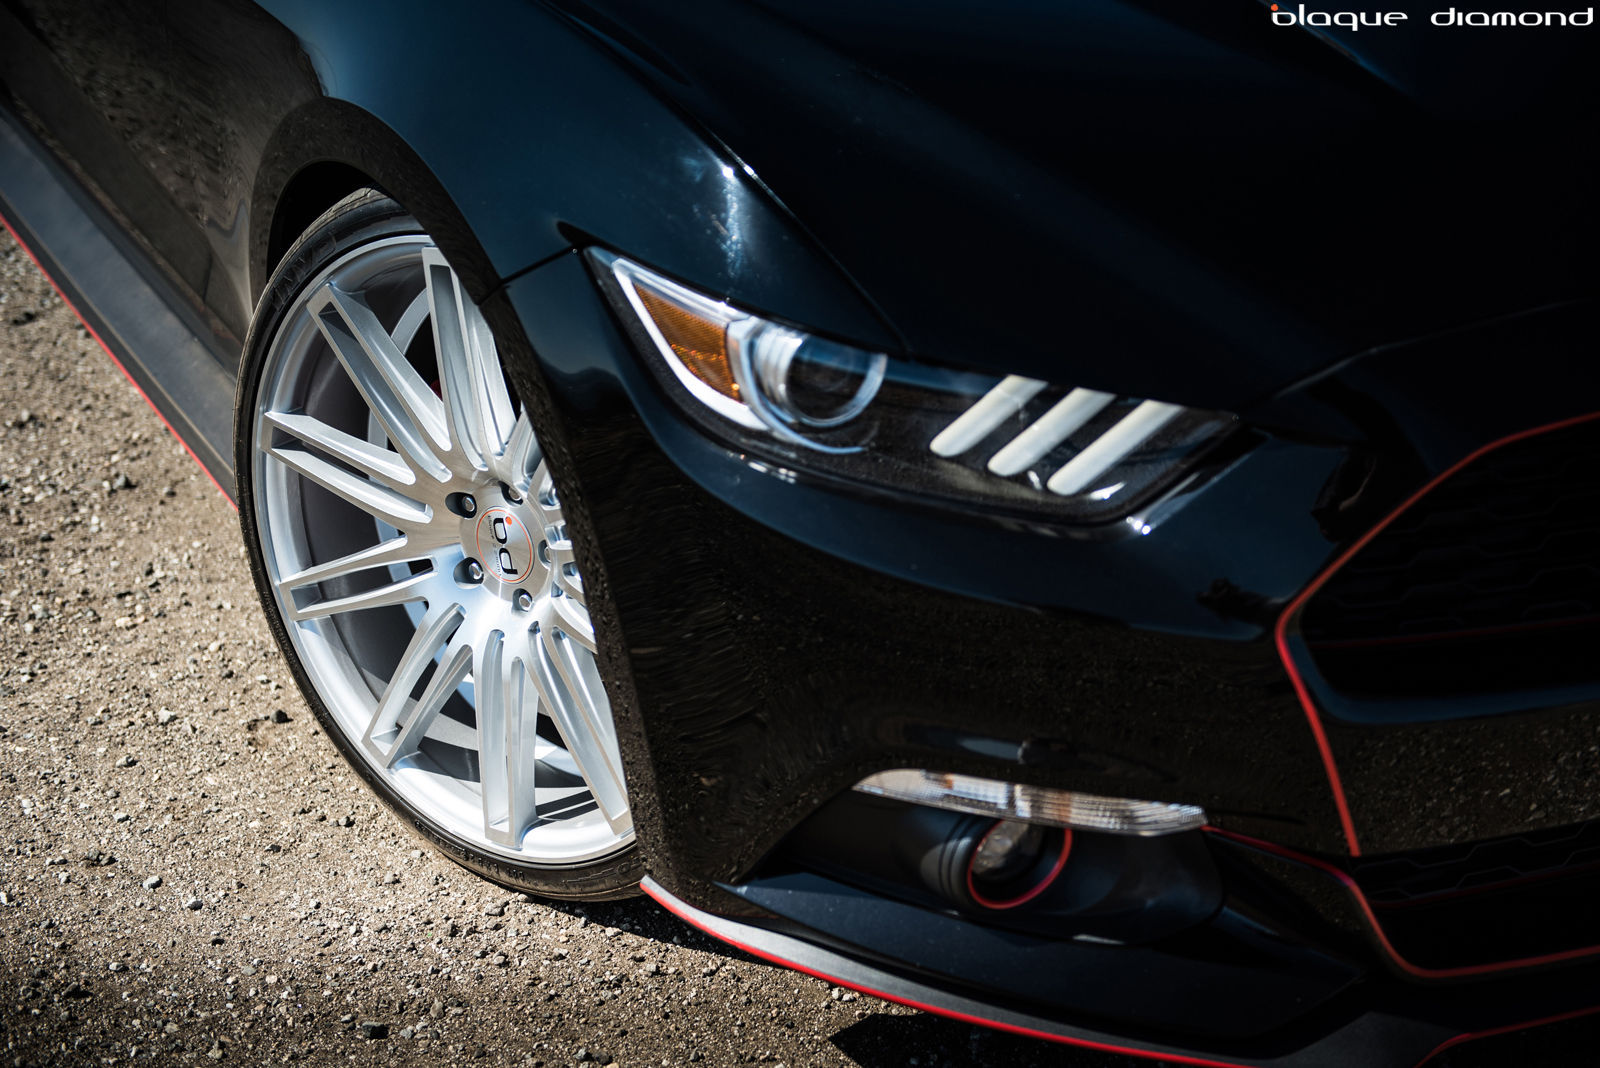 2015 Ford Mustang | 2015 Ford Mustang Fitted With 22 Inch BD-2's in Silver With Polished Face